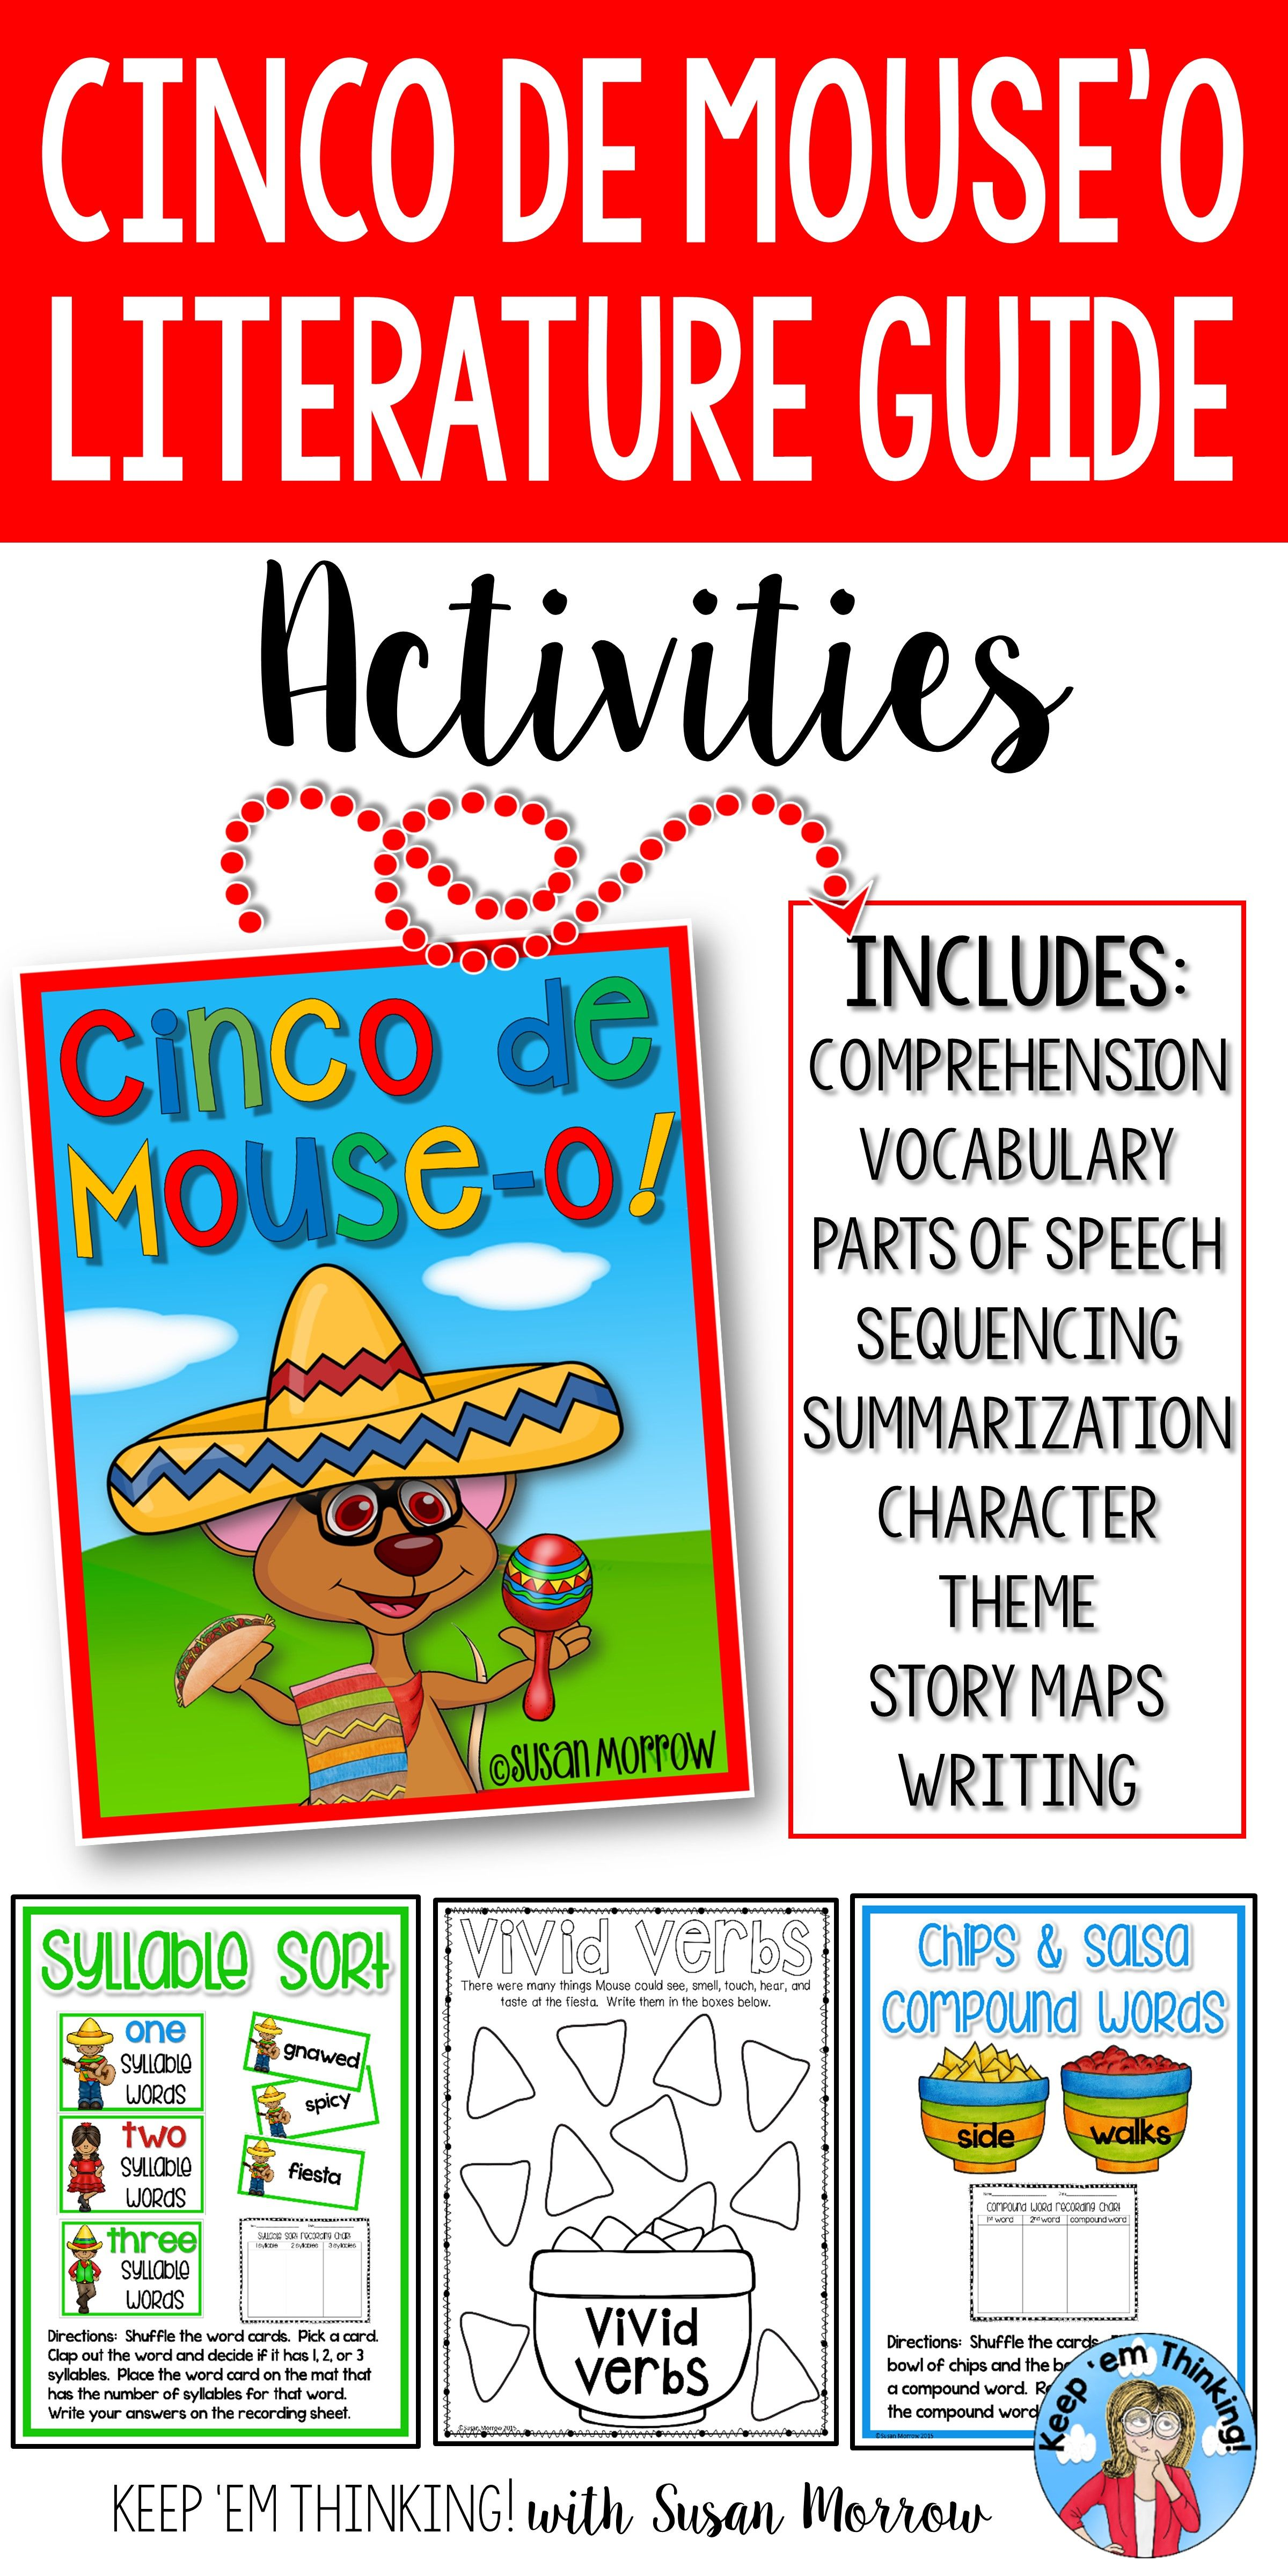 Cinco De Mouse O Literature Guide And Activities